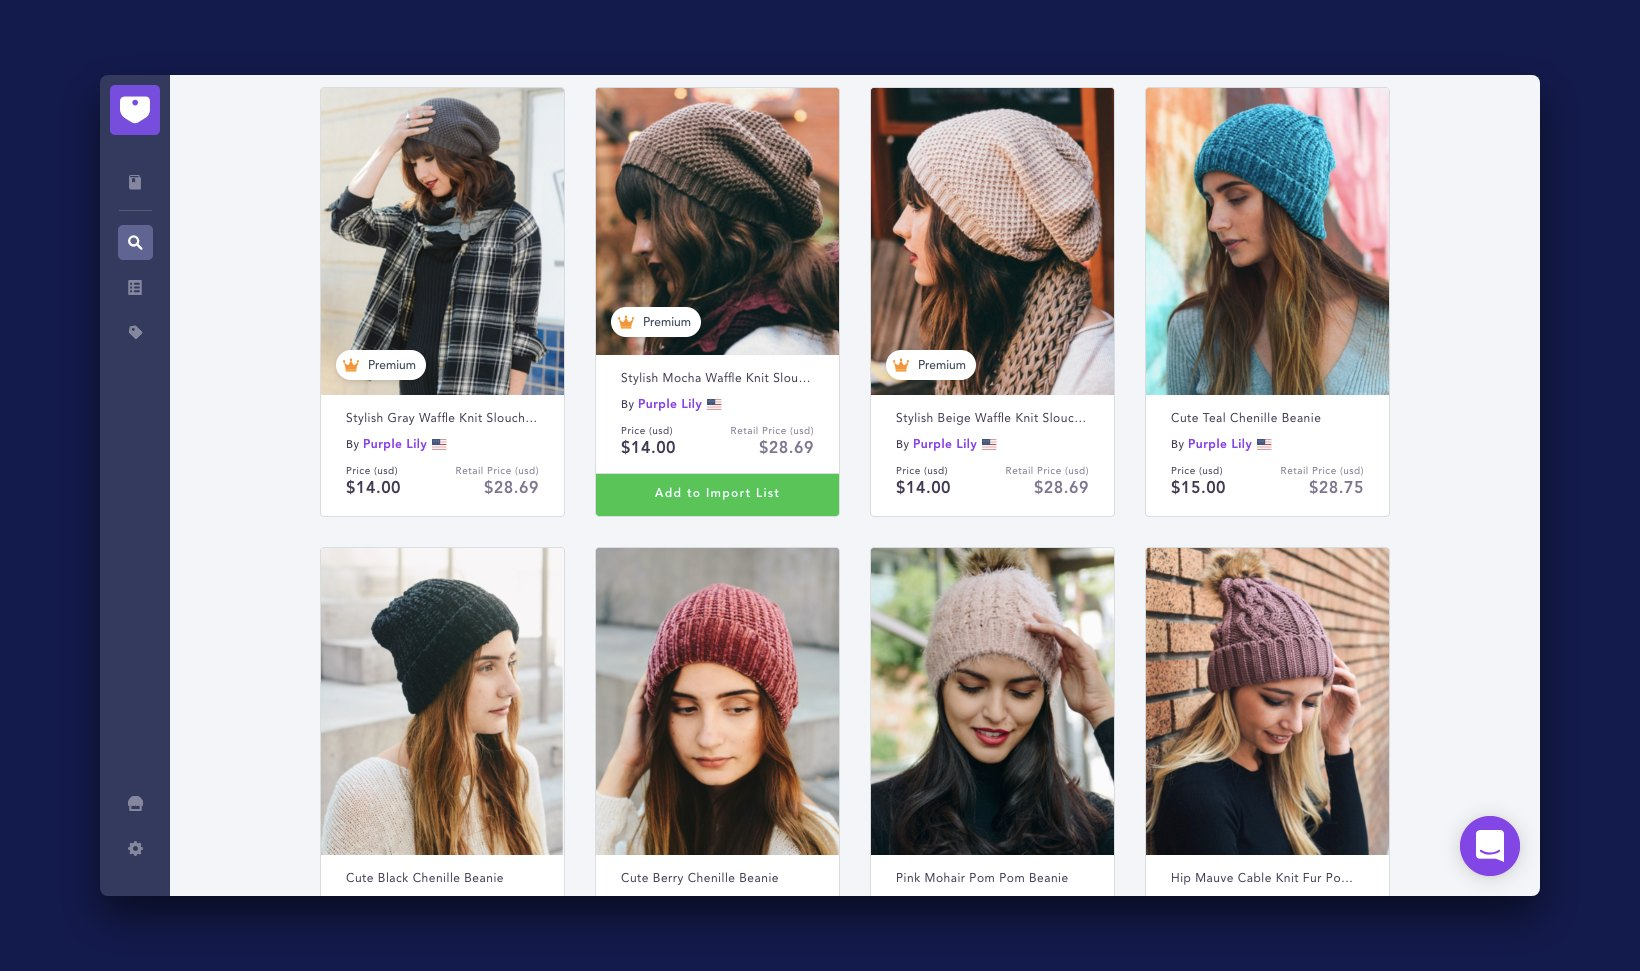 Screenshot of the Spocket app's search page showing results for beanies, a popular holiday product